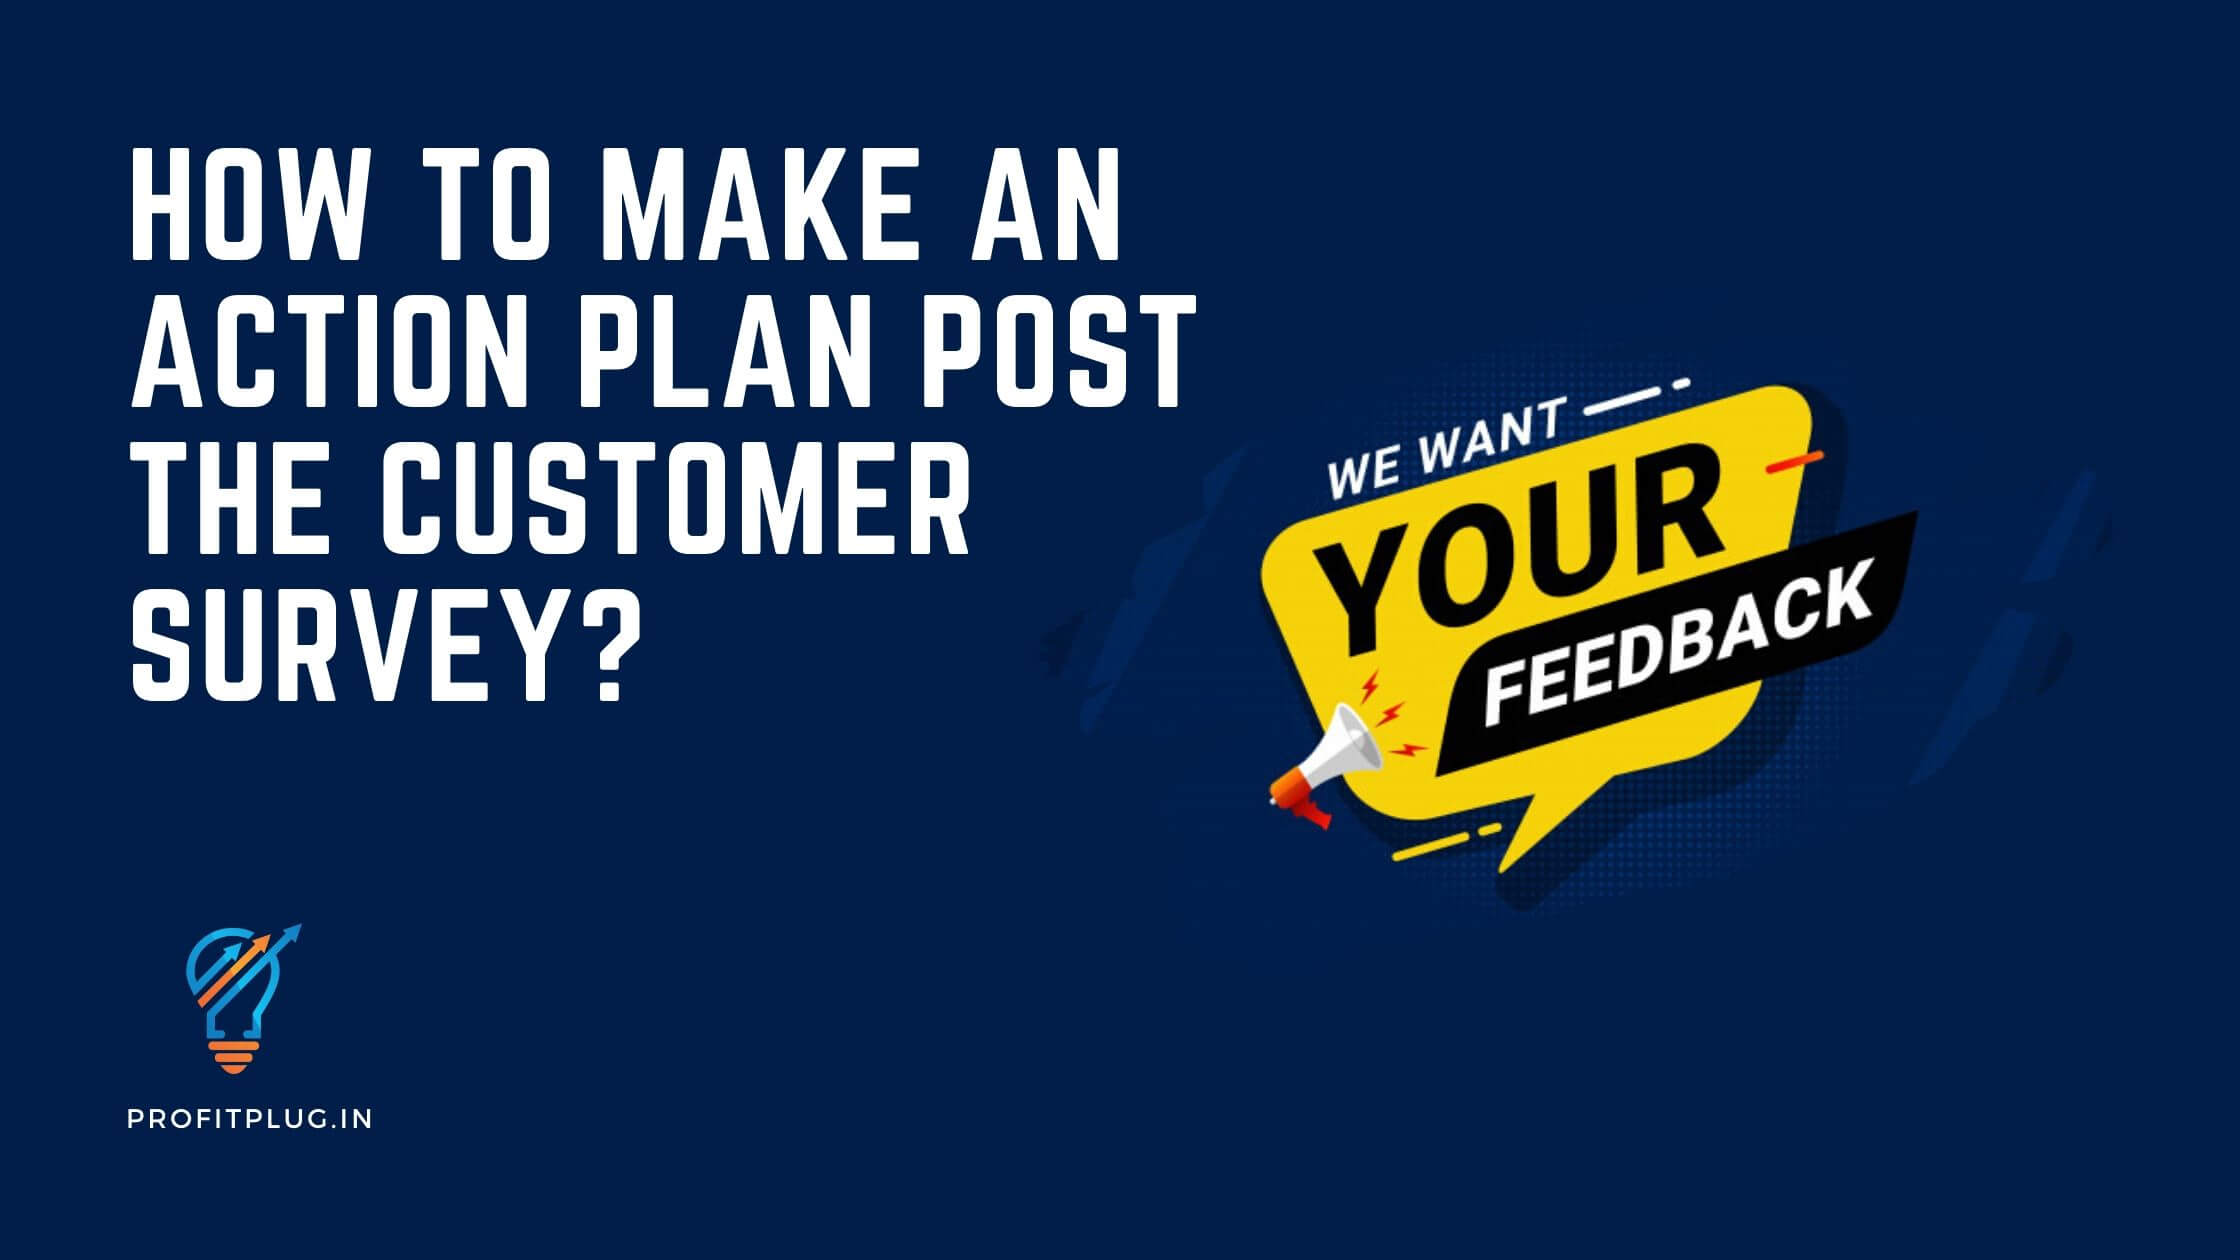 How to make an action plan post the customer survey